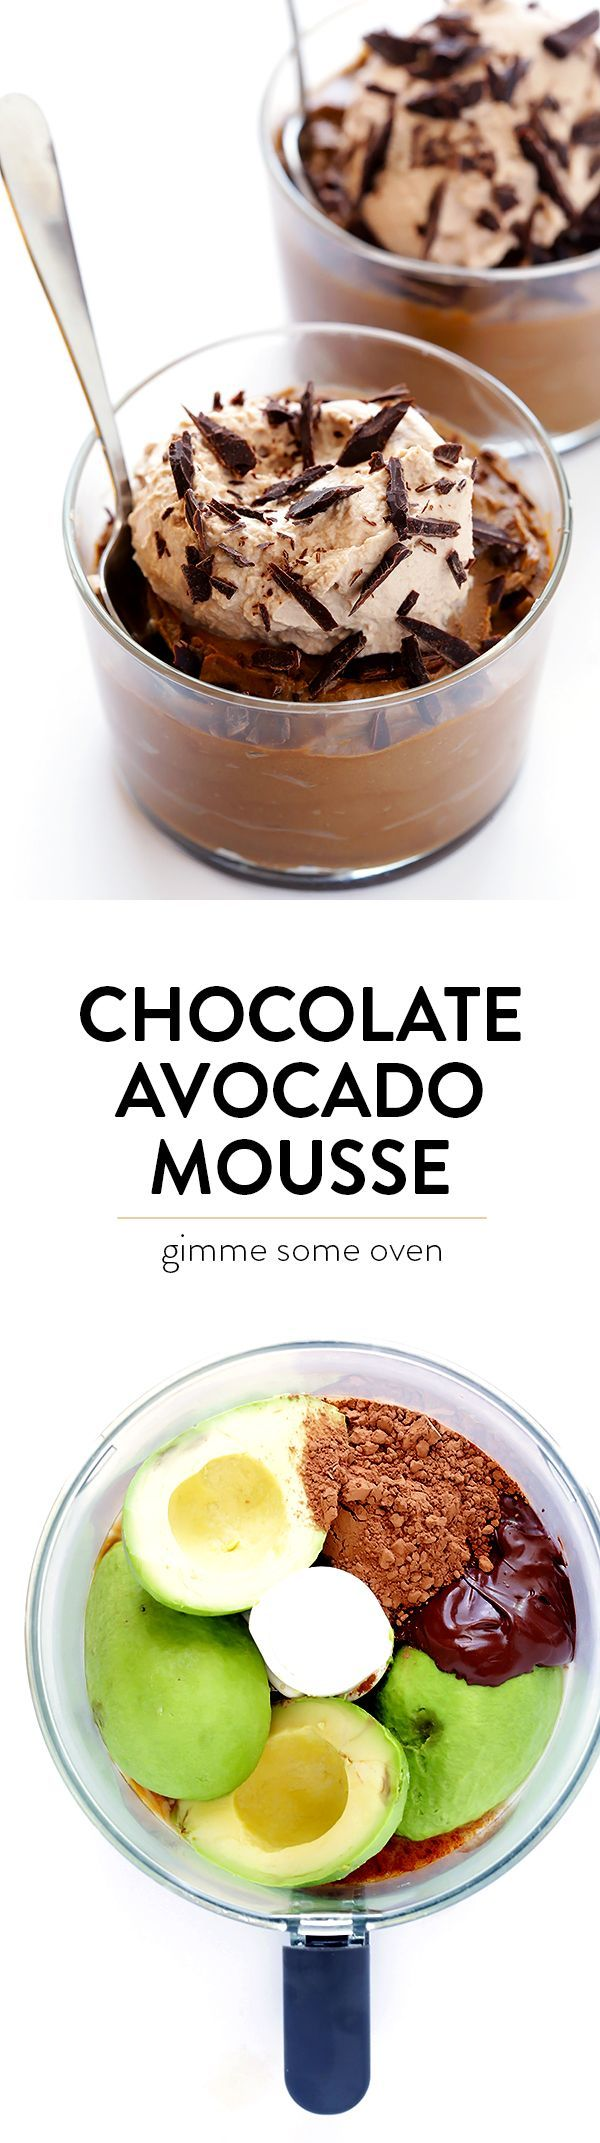 966 best chocolate recipes images on pinterest healthy desserts dark chocolate avocado mousse chocolate avocado mousseketo recipeshealthy recipesfood processorblendershealthy forumfinder Choice Image